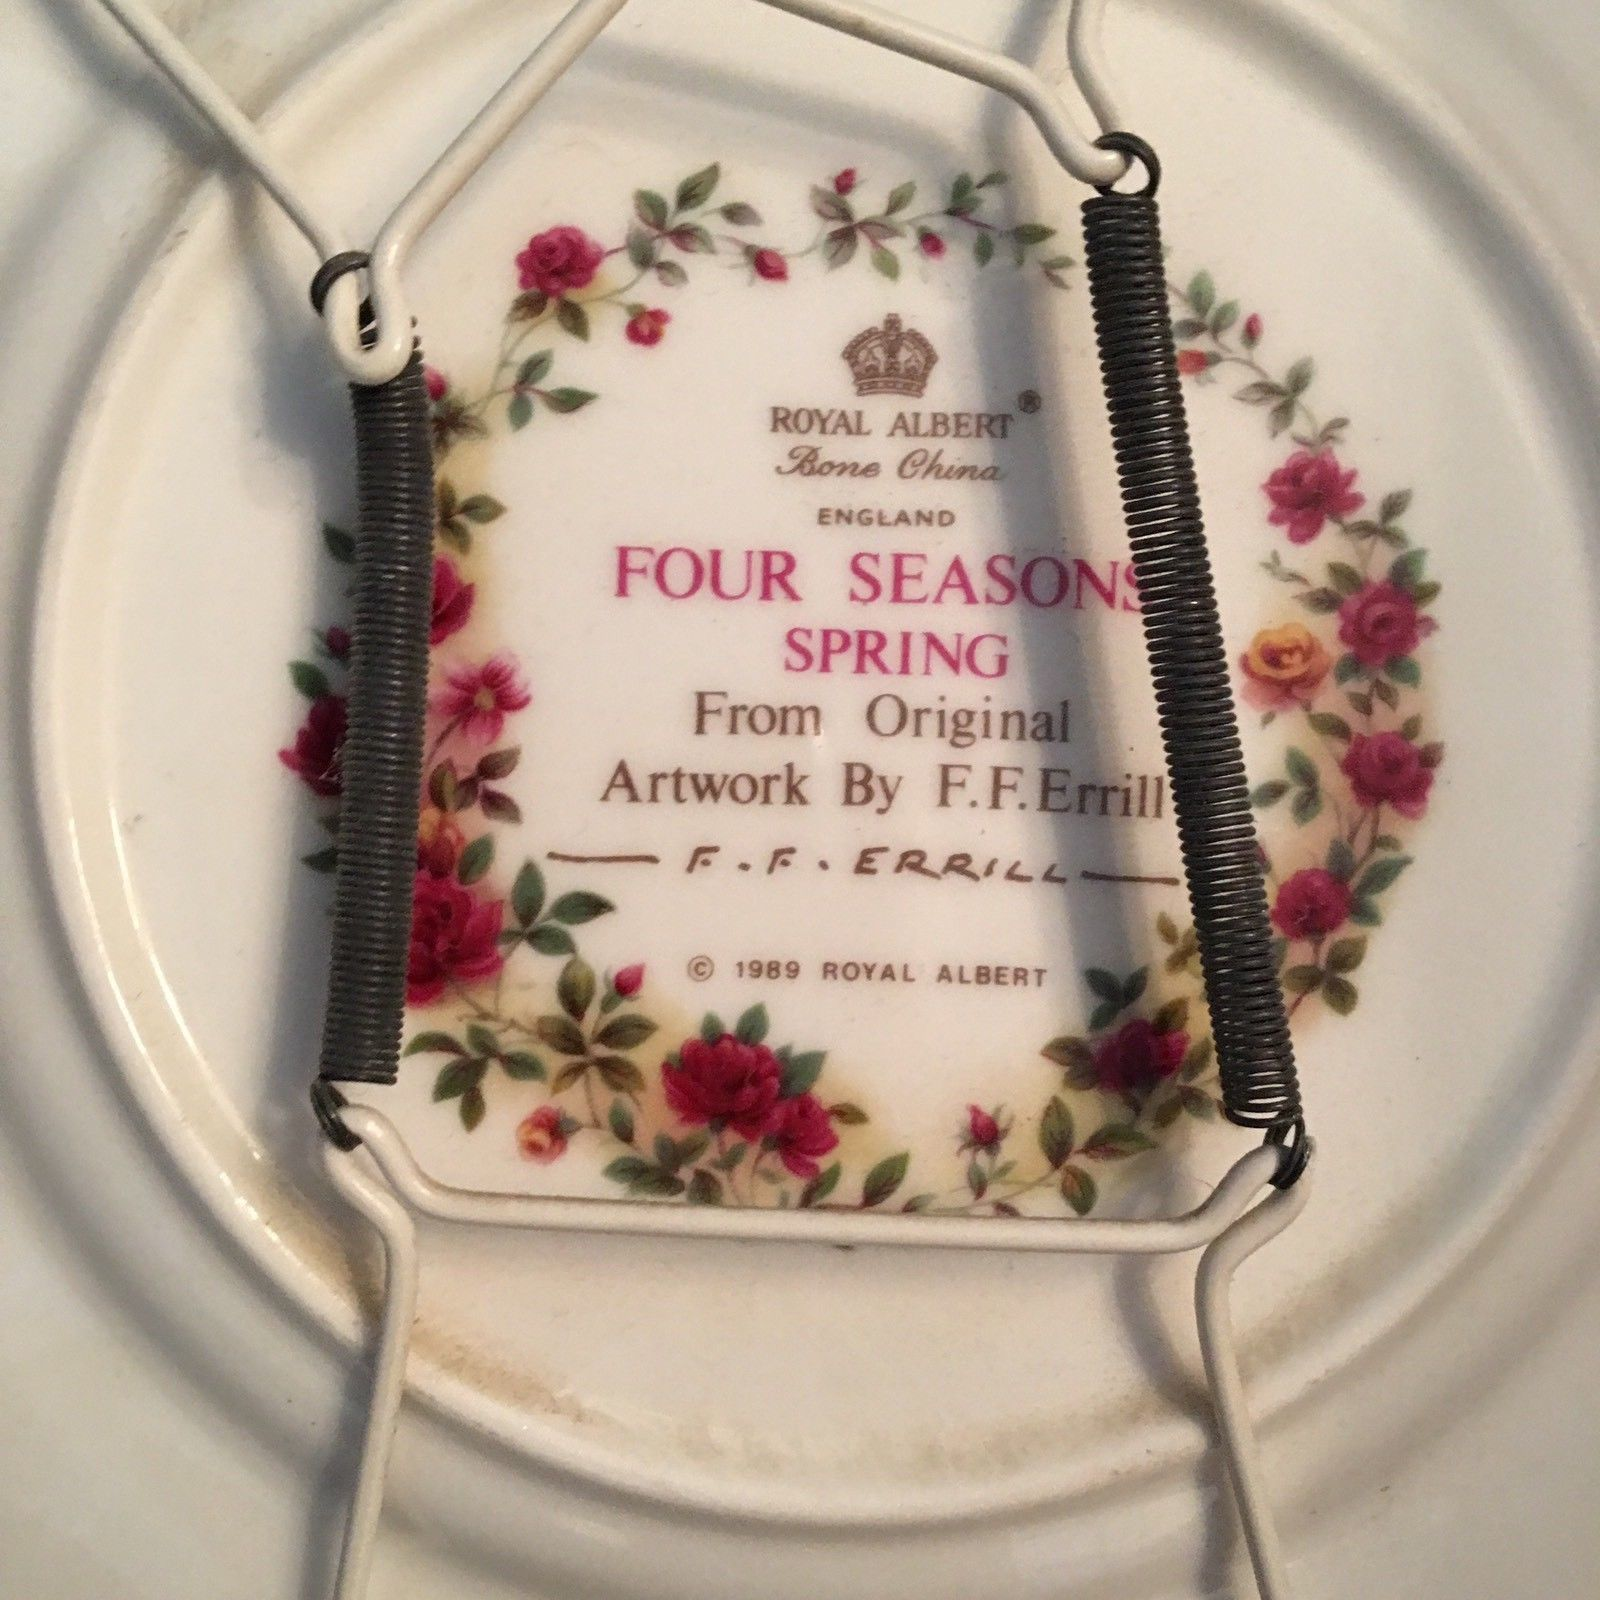 Royal Albert 'Four Seasons Series' Spring Plate - Artwork by Fred F. Errill Mint